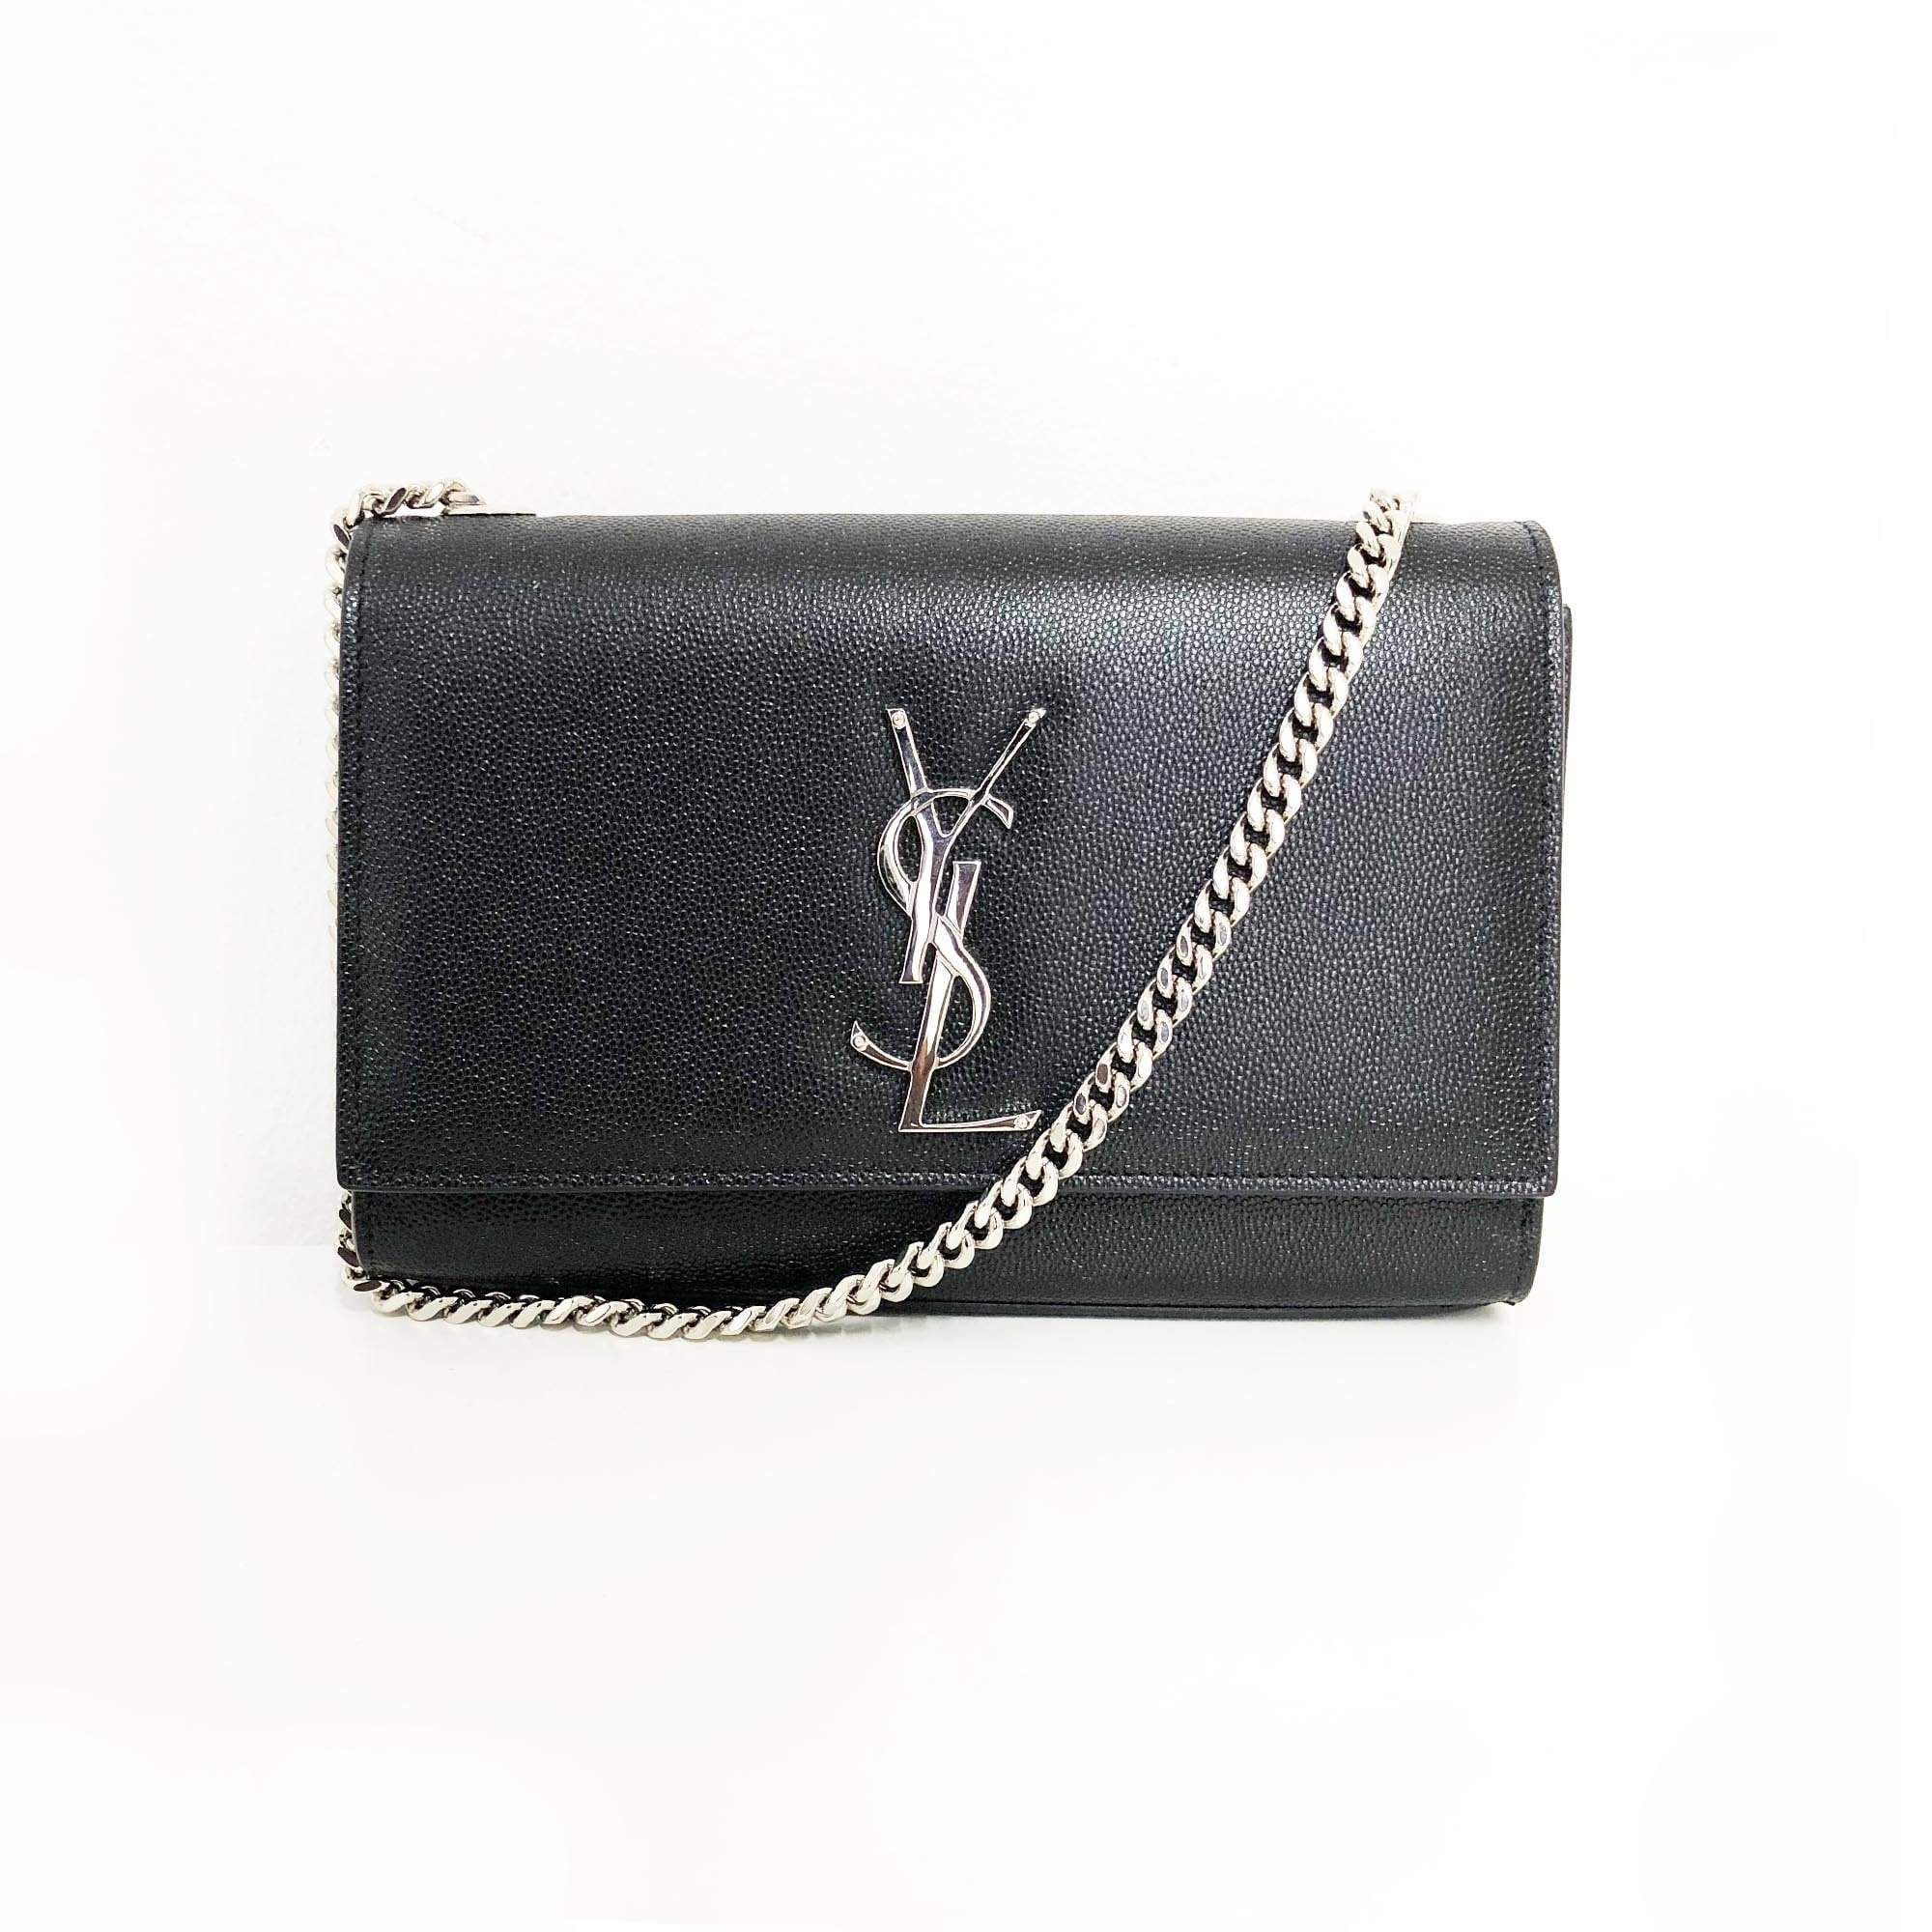 47ef38c3ab6a Yves Saint Laurent Kate Small Monogram shoulder bag – Garderobe